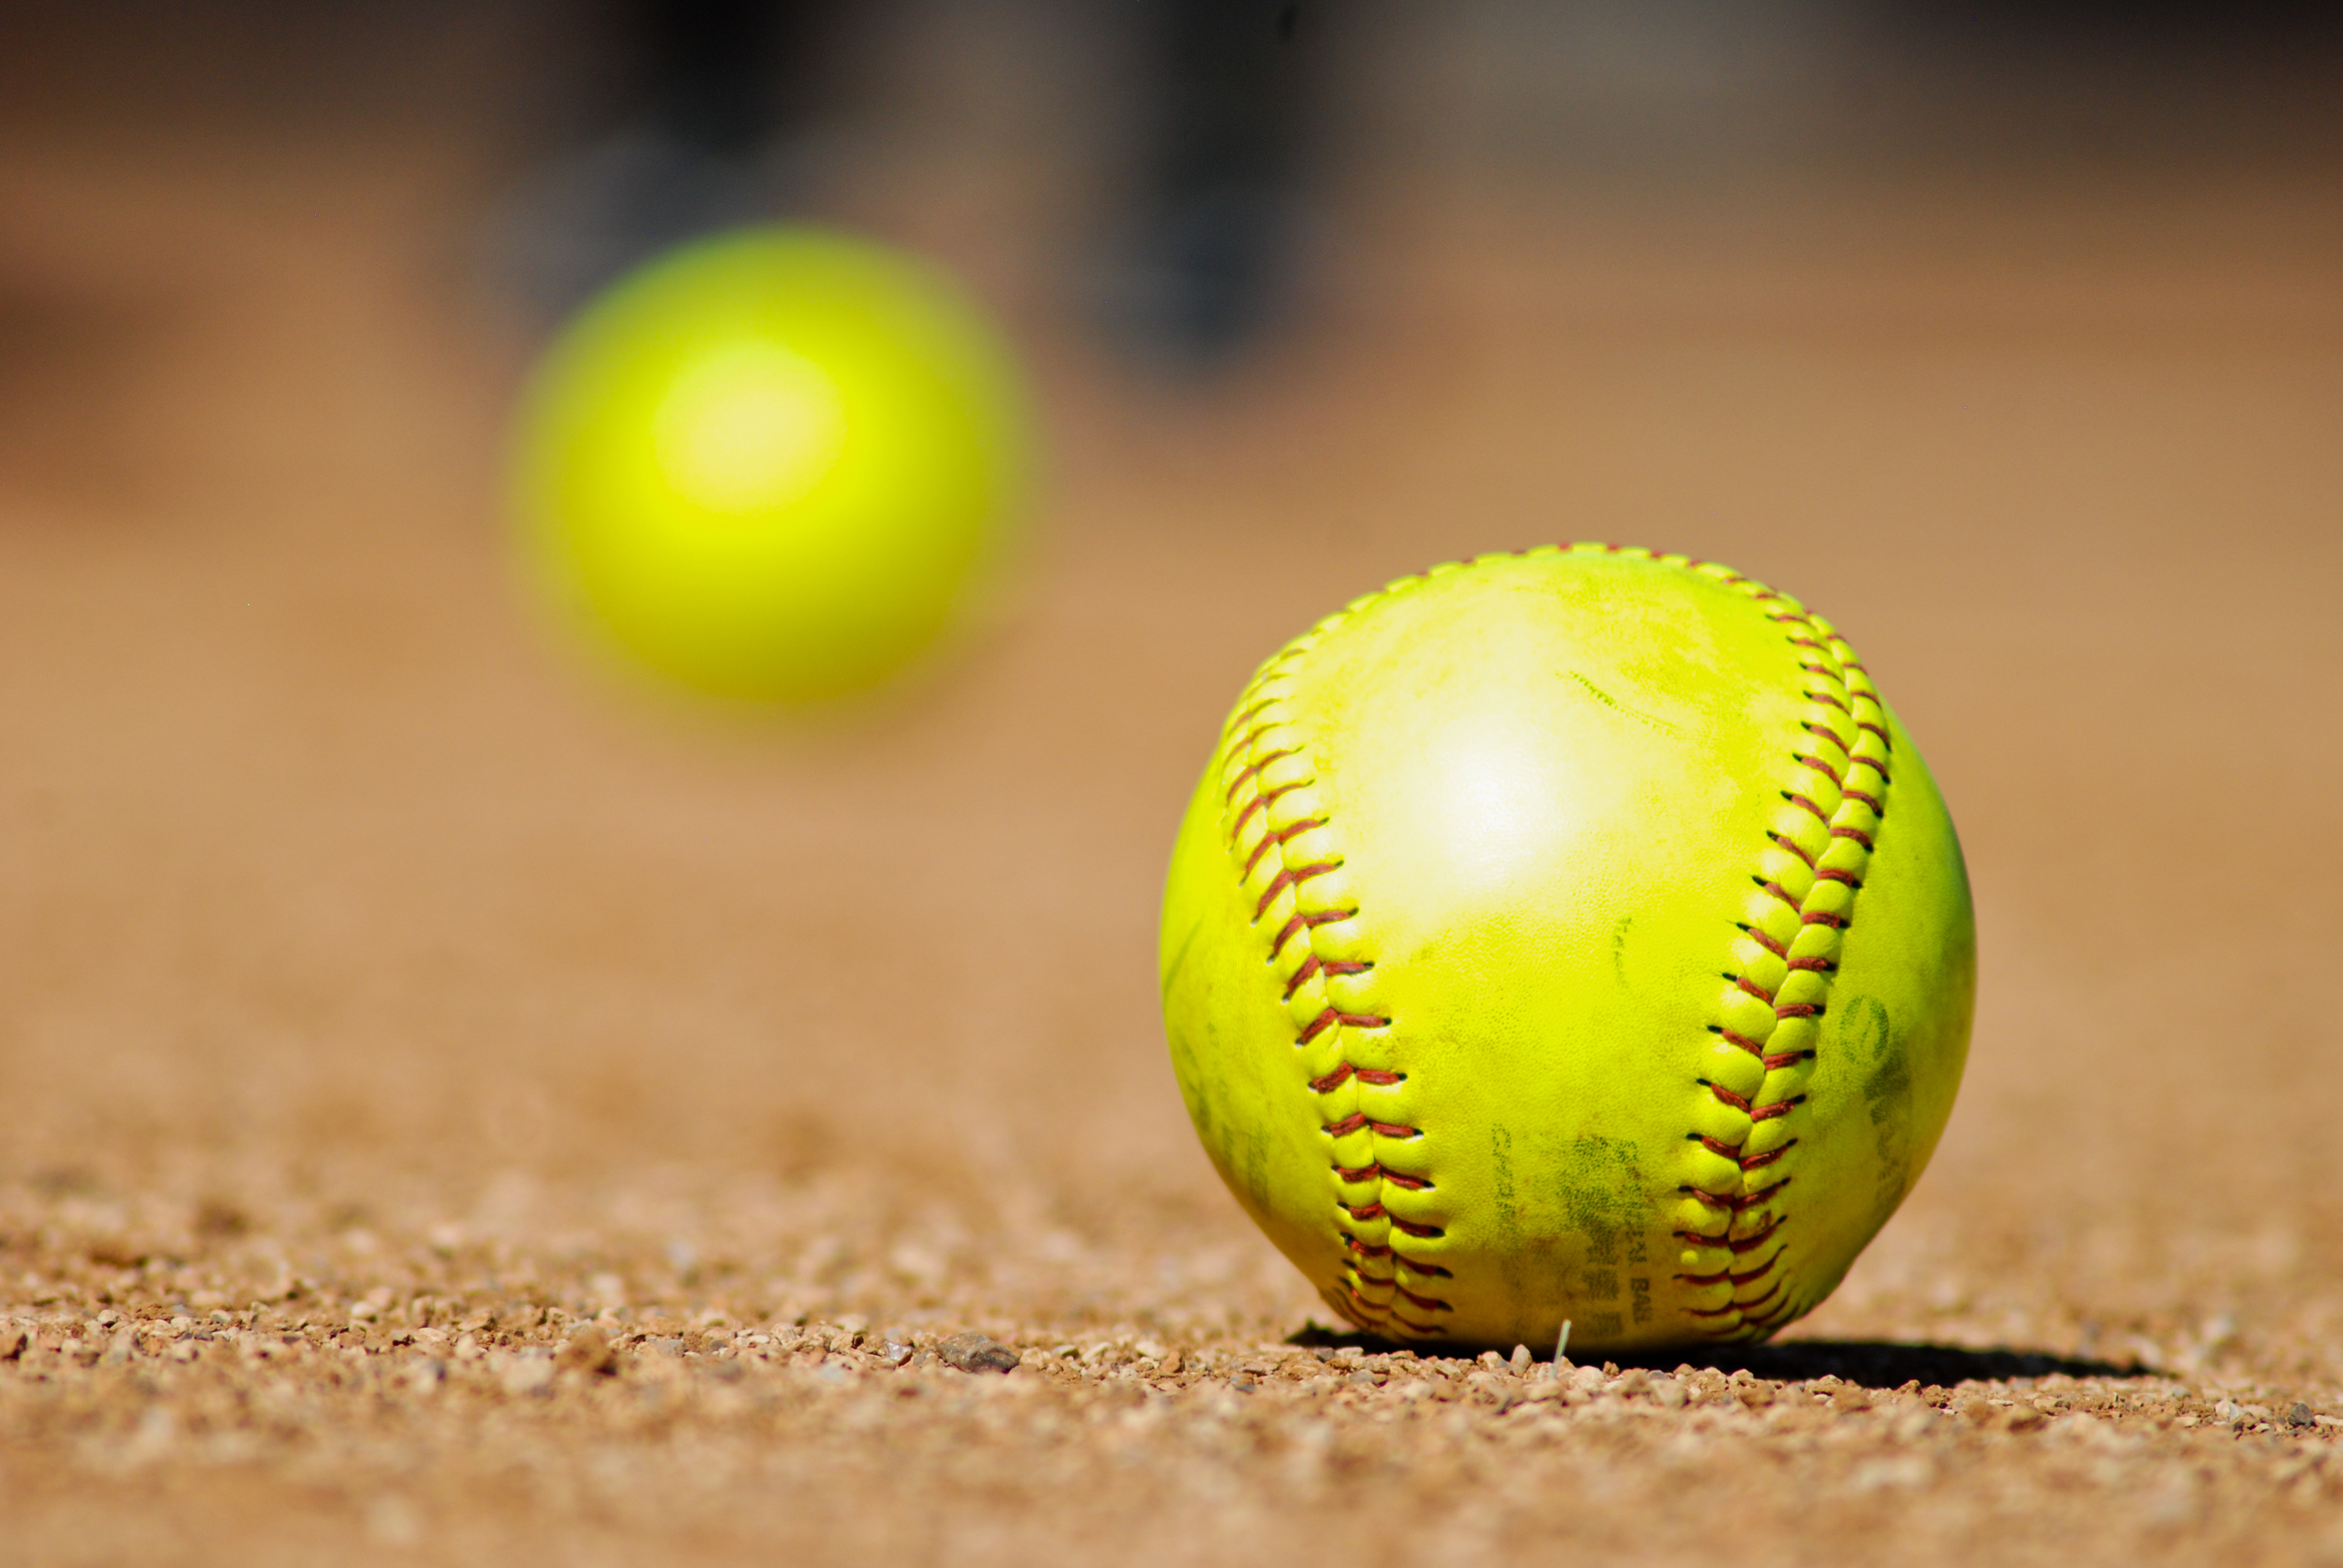 Softball Wallpapers High Quality Download 3872x2592